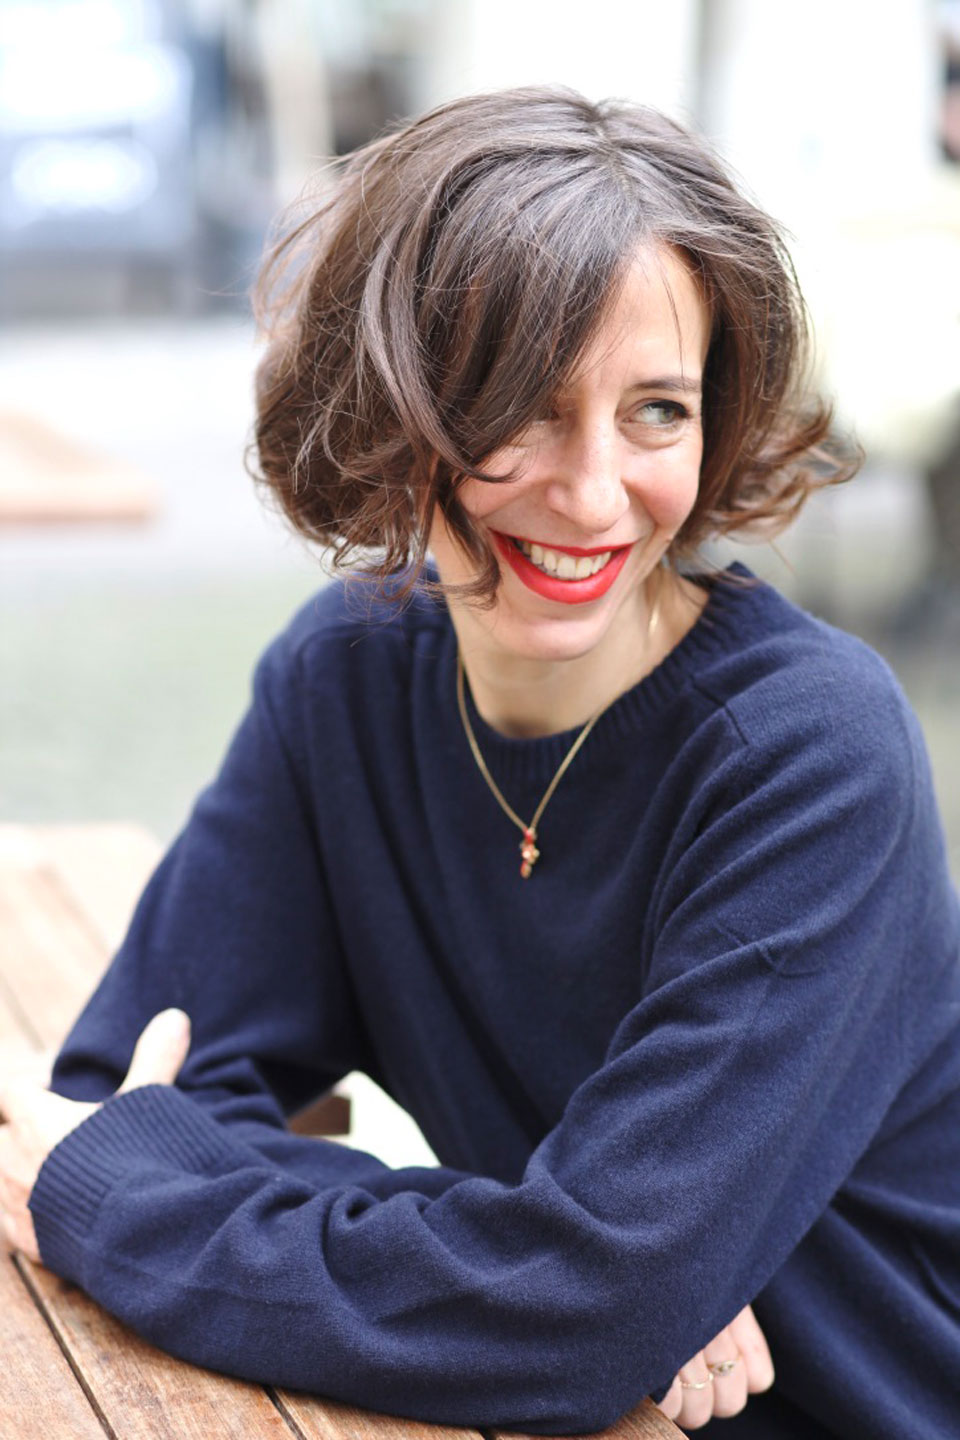 Katrin Roth von Sonrisa, Beauty Talk, Beauty Rituale, Interview, Lifestyle Blog,